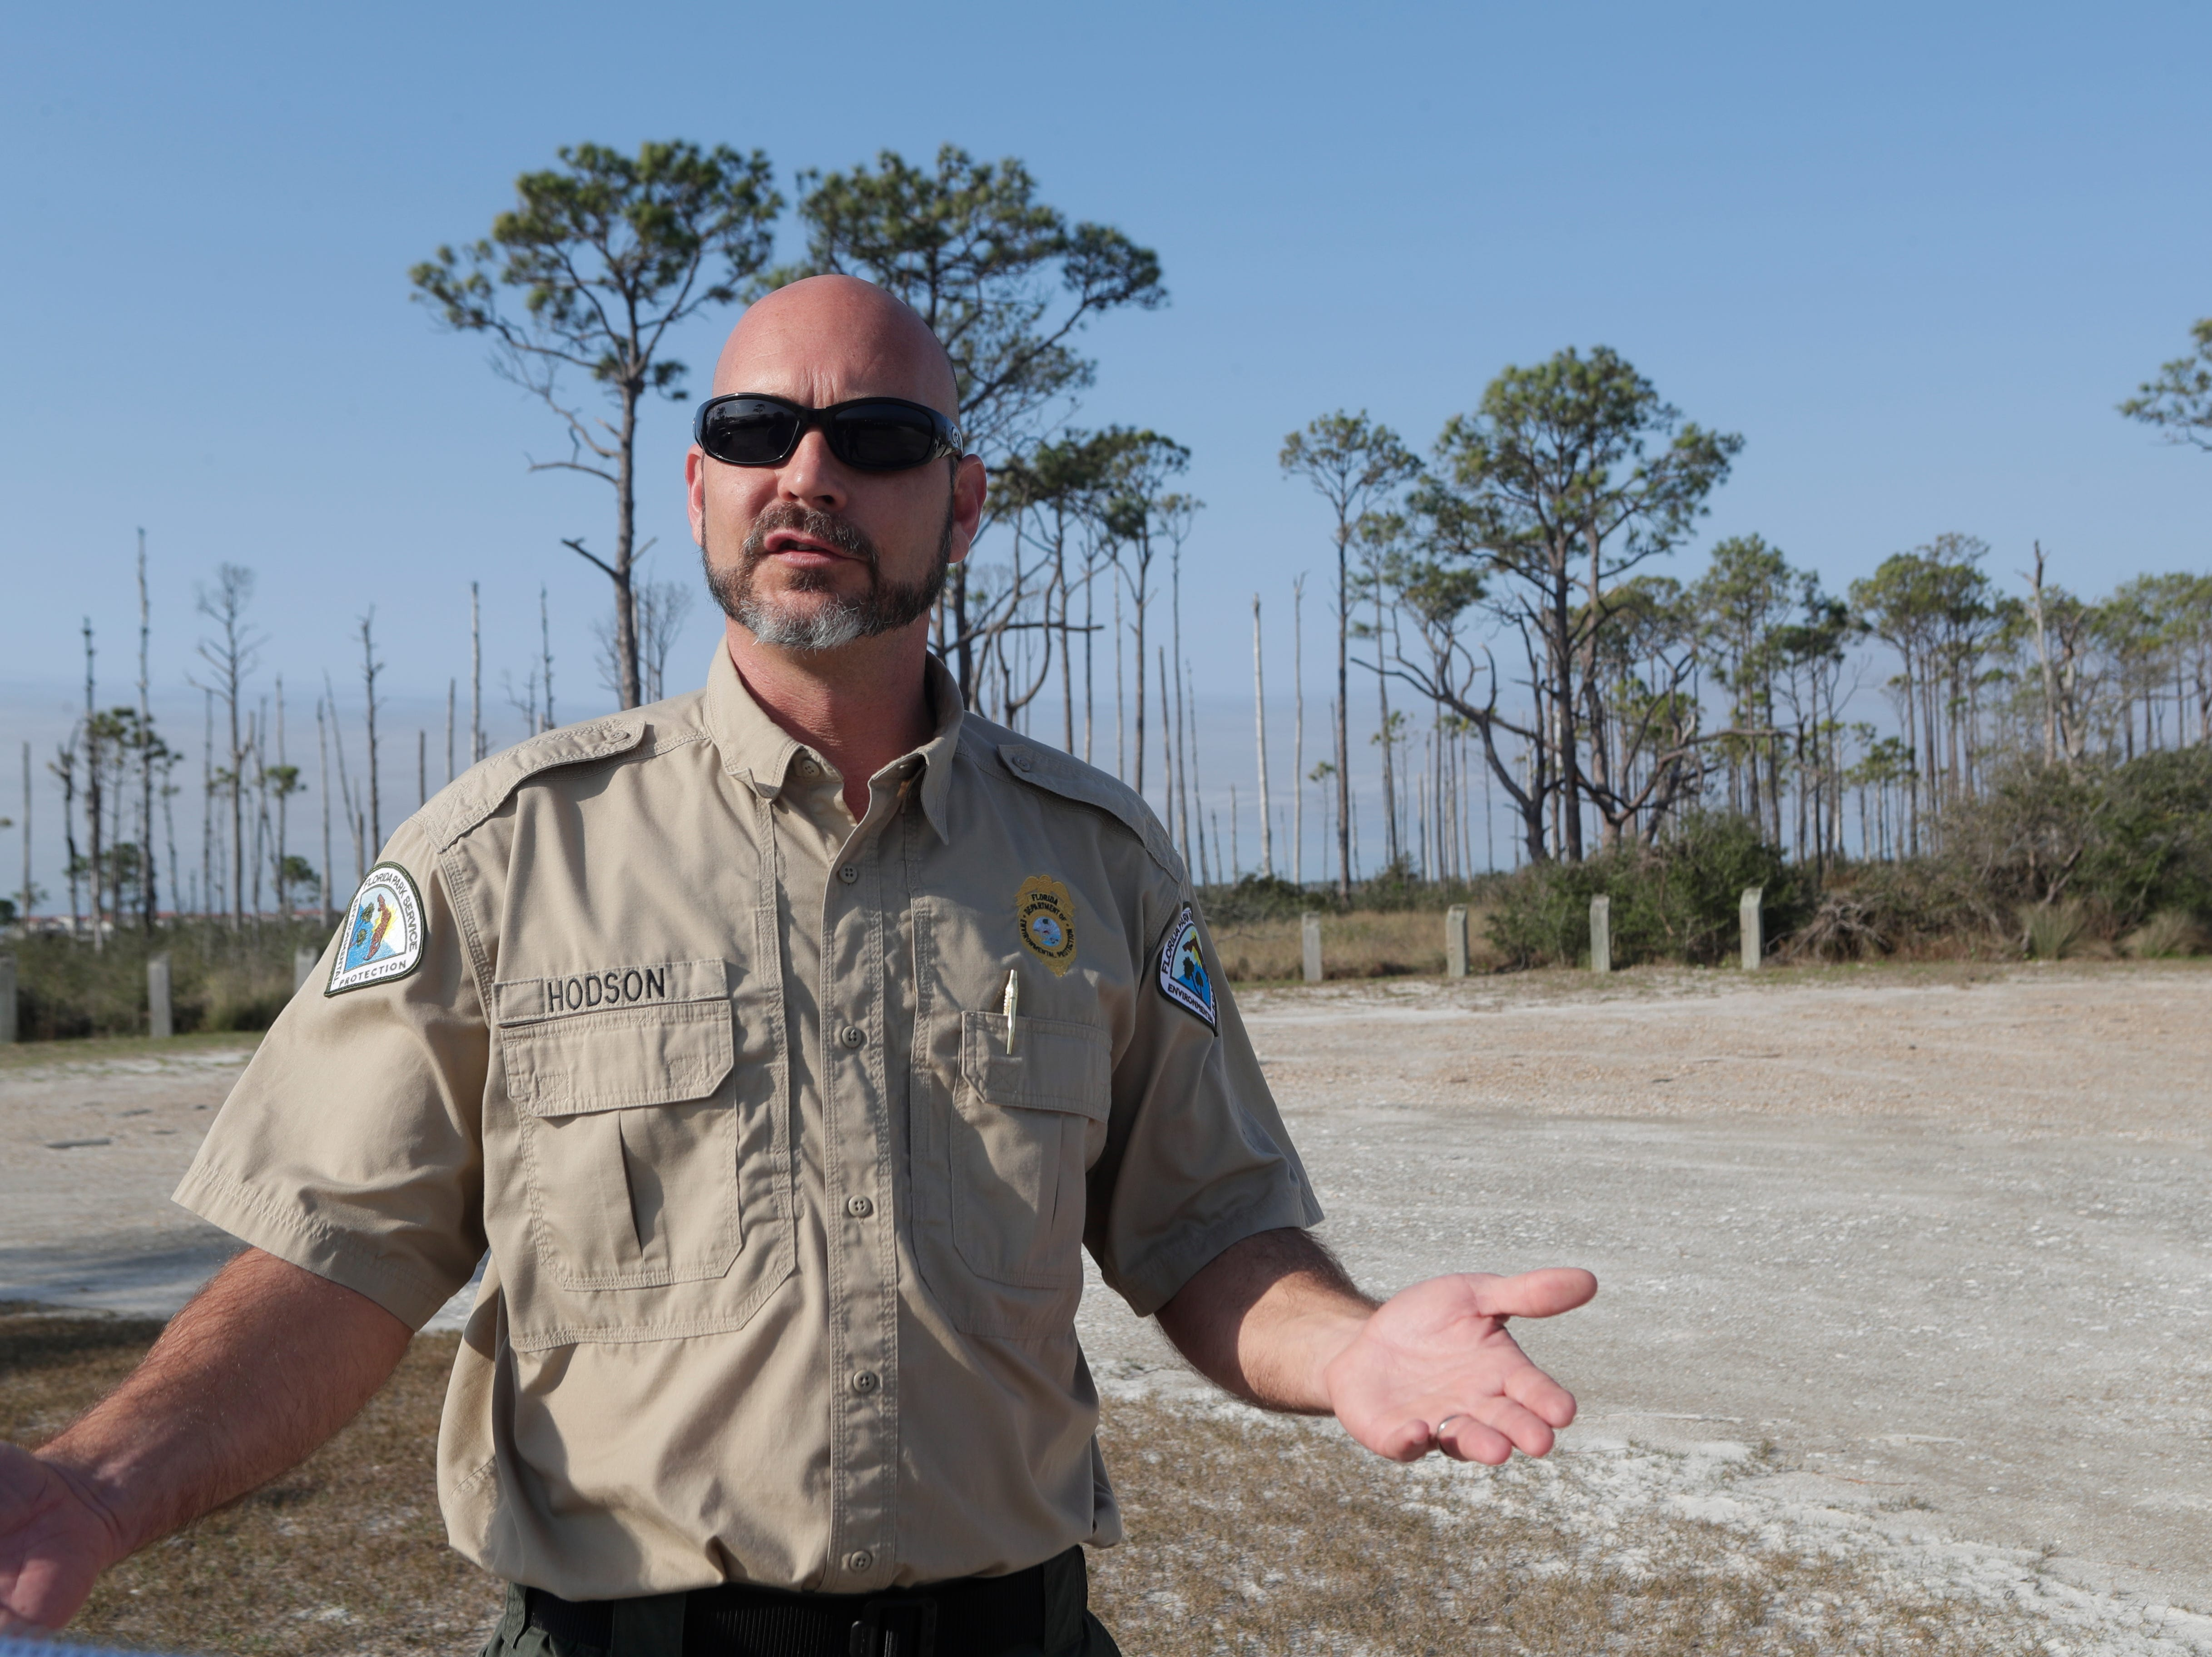 Josh Hodson, a park ranger at St. George Island State Park, talks about the progress that has been made to clean up the park since Hurricane Michael hit in Oct. 2018. The park reopens on March 1, 2019.